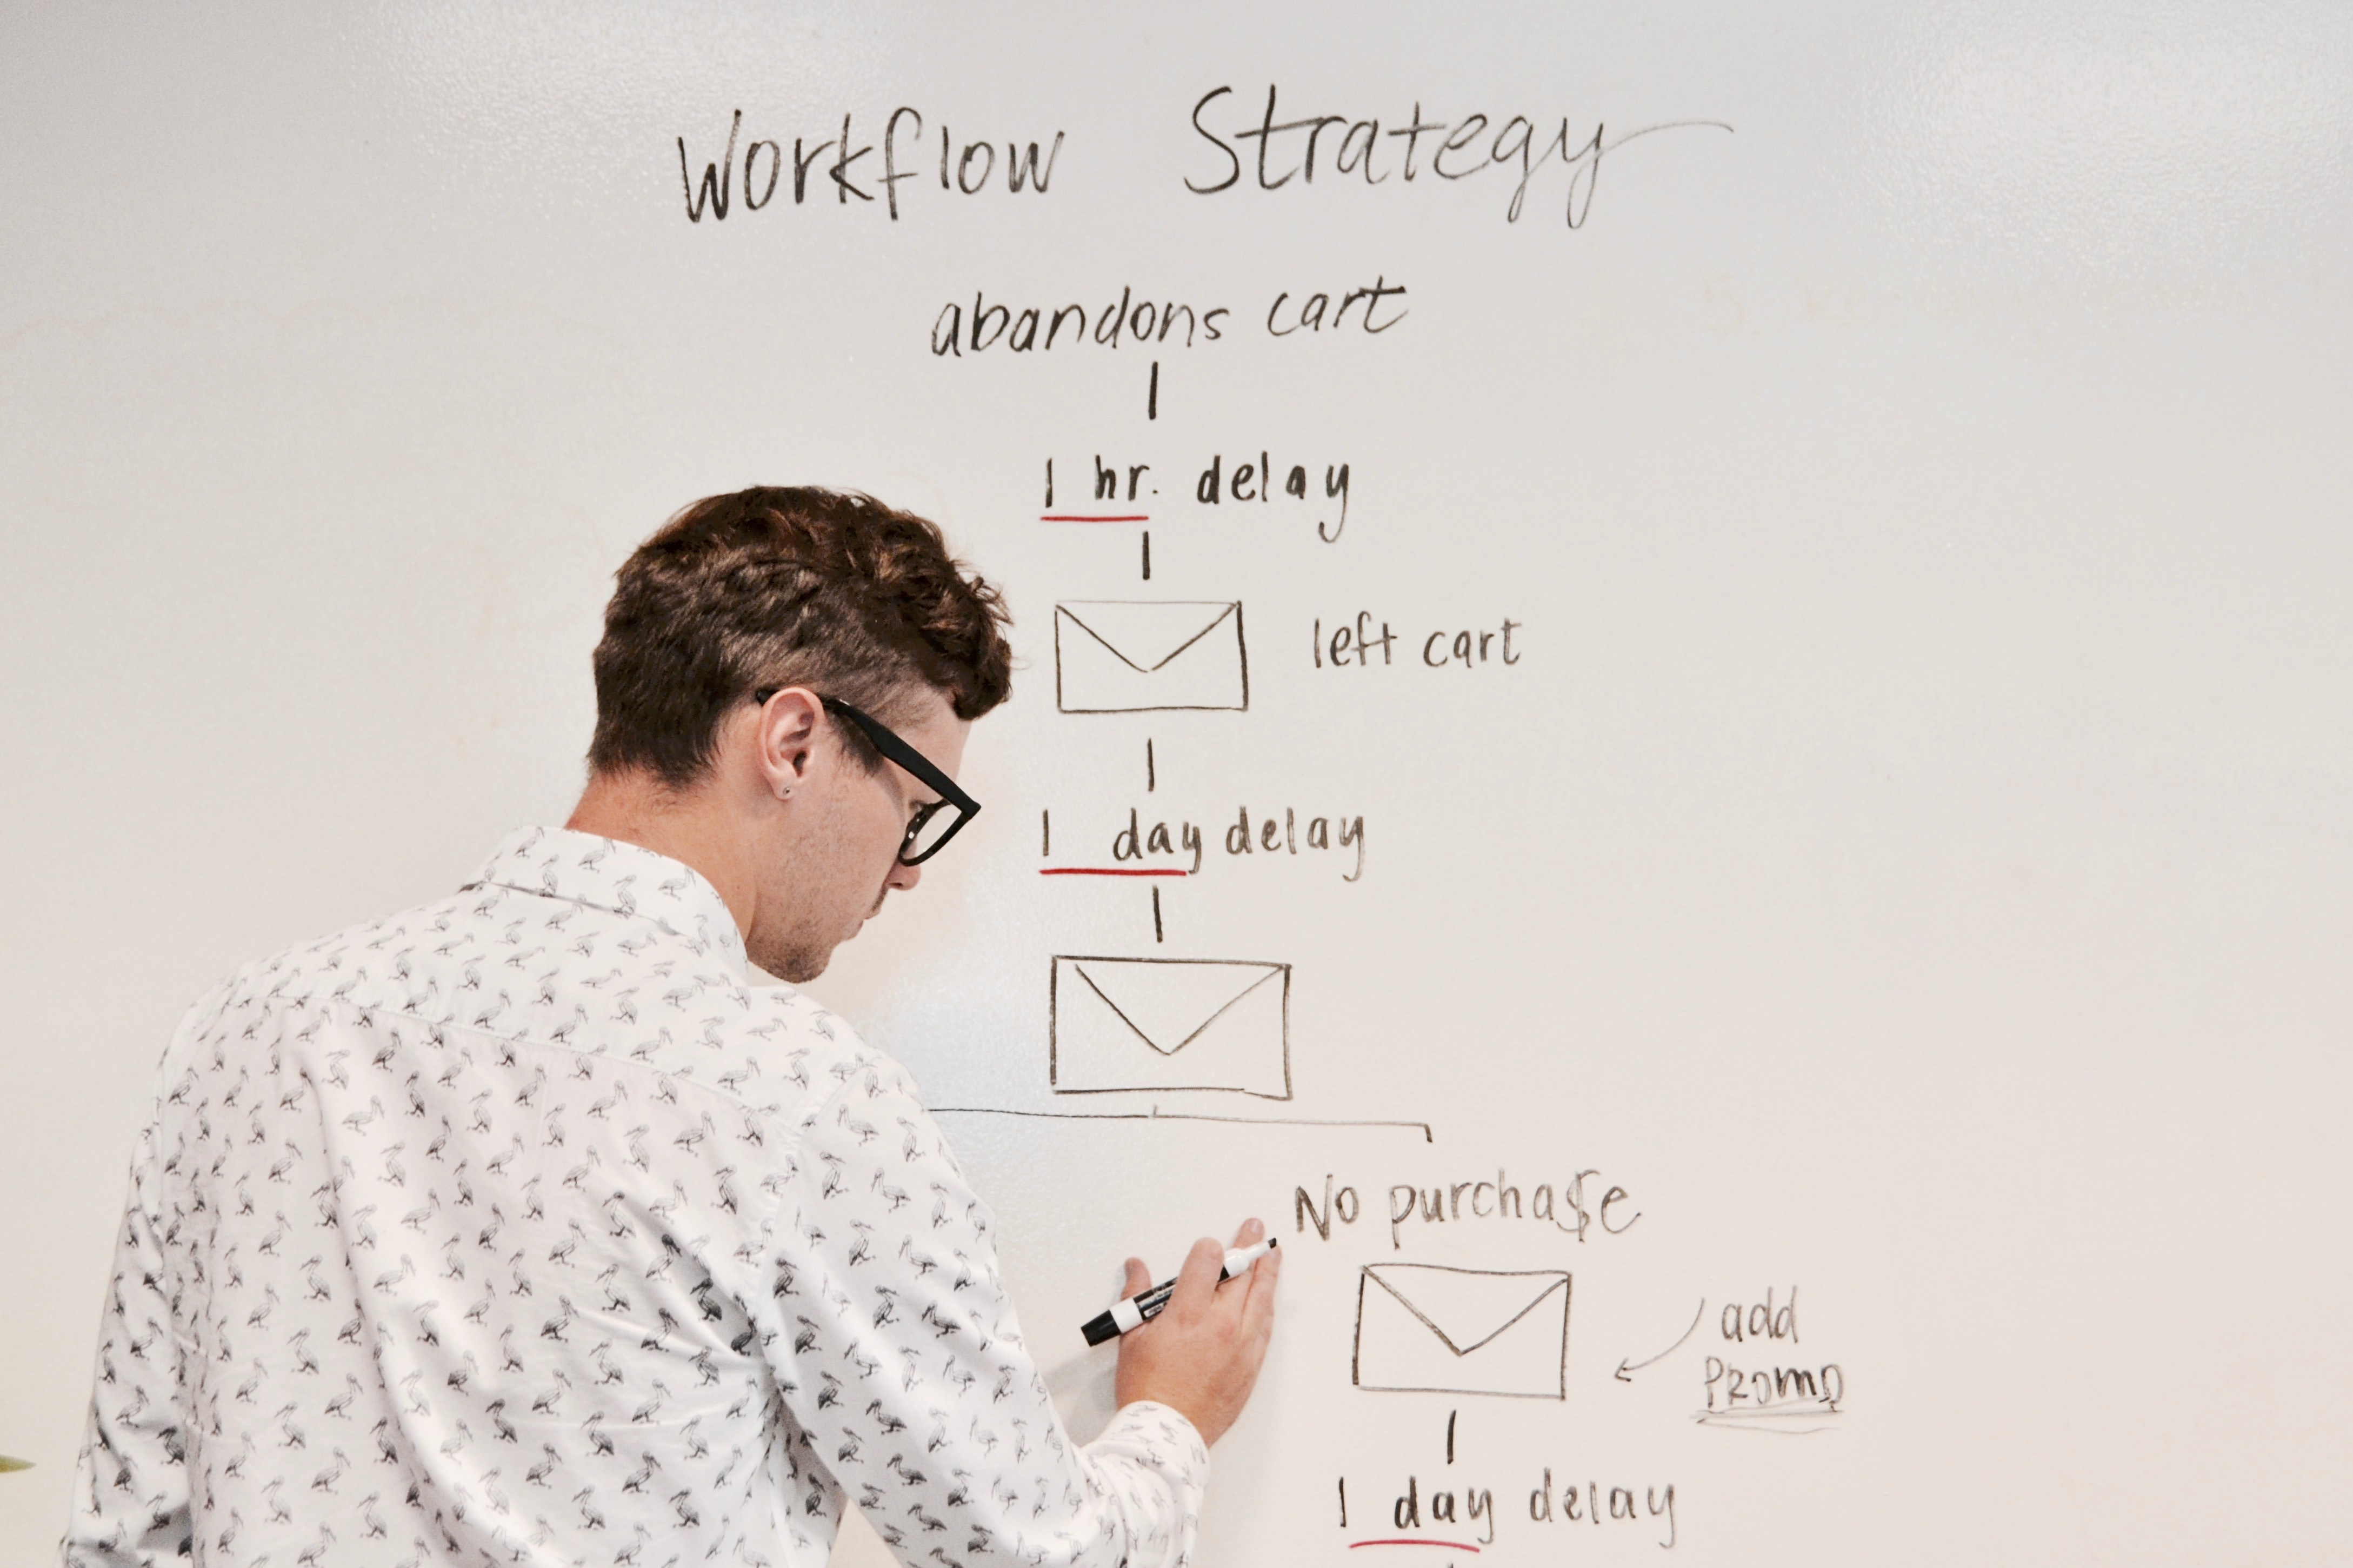 Man writing workflow strategy on whiteboard